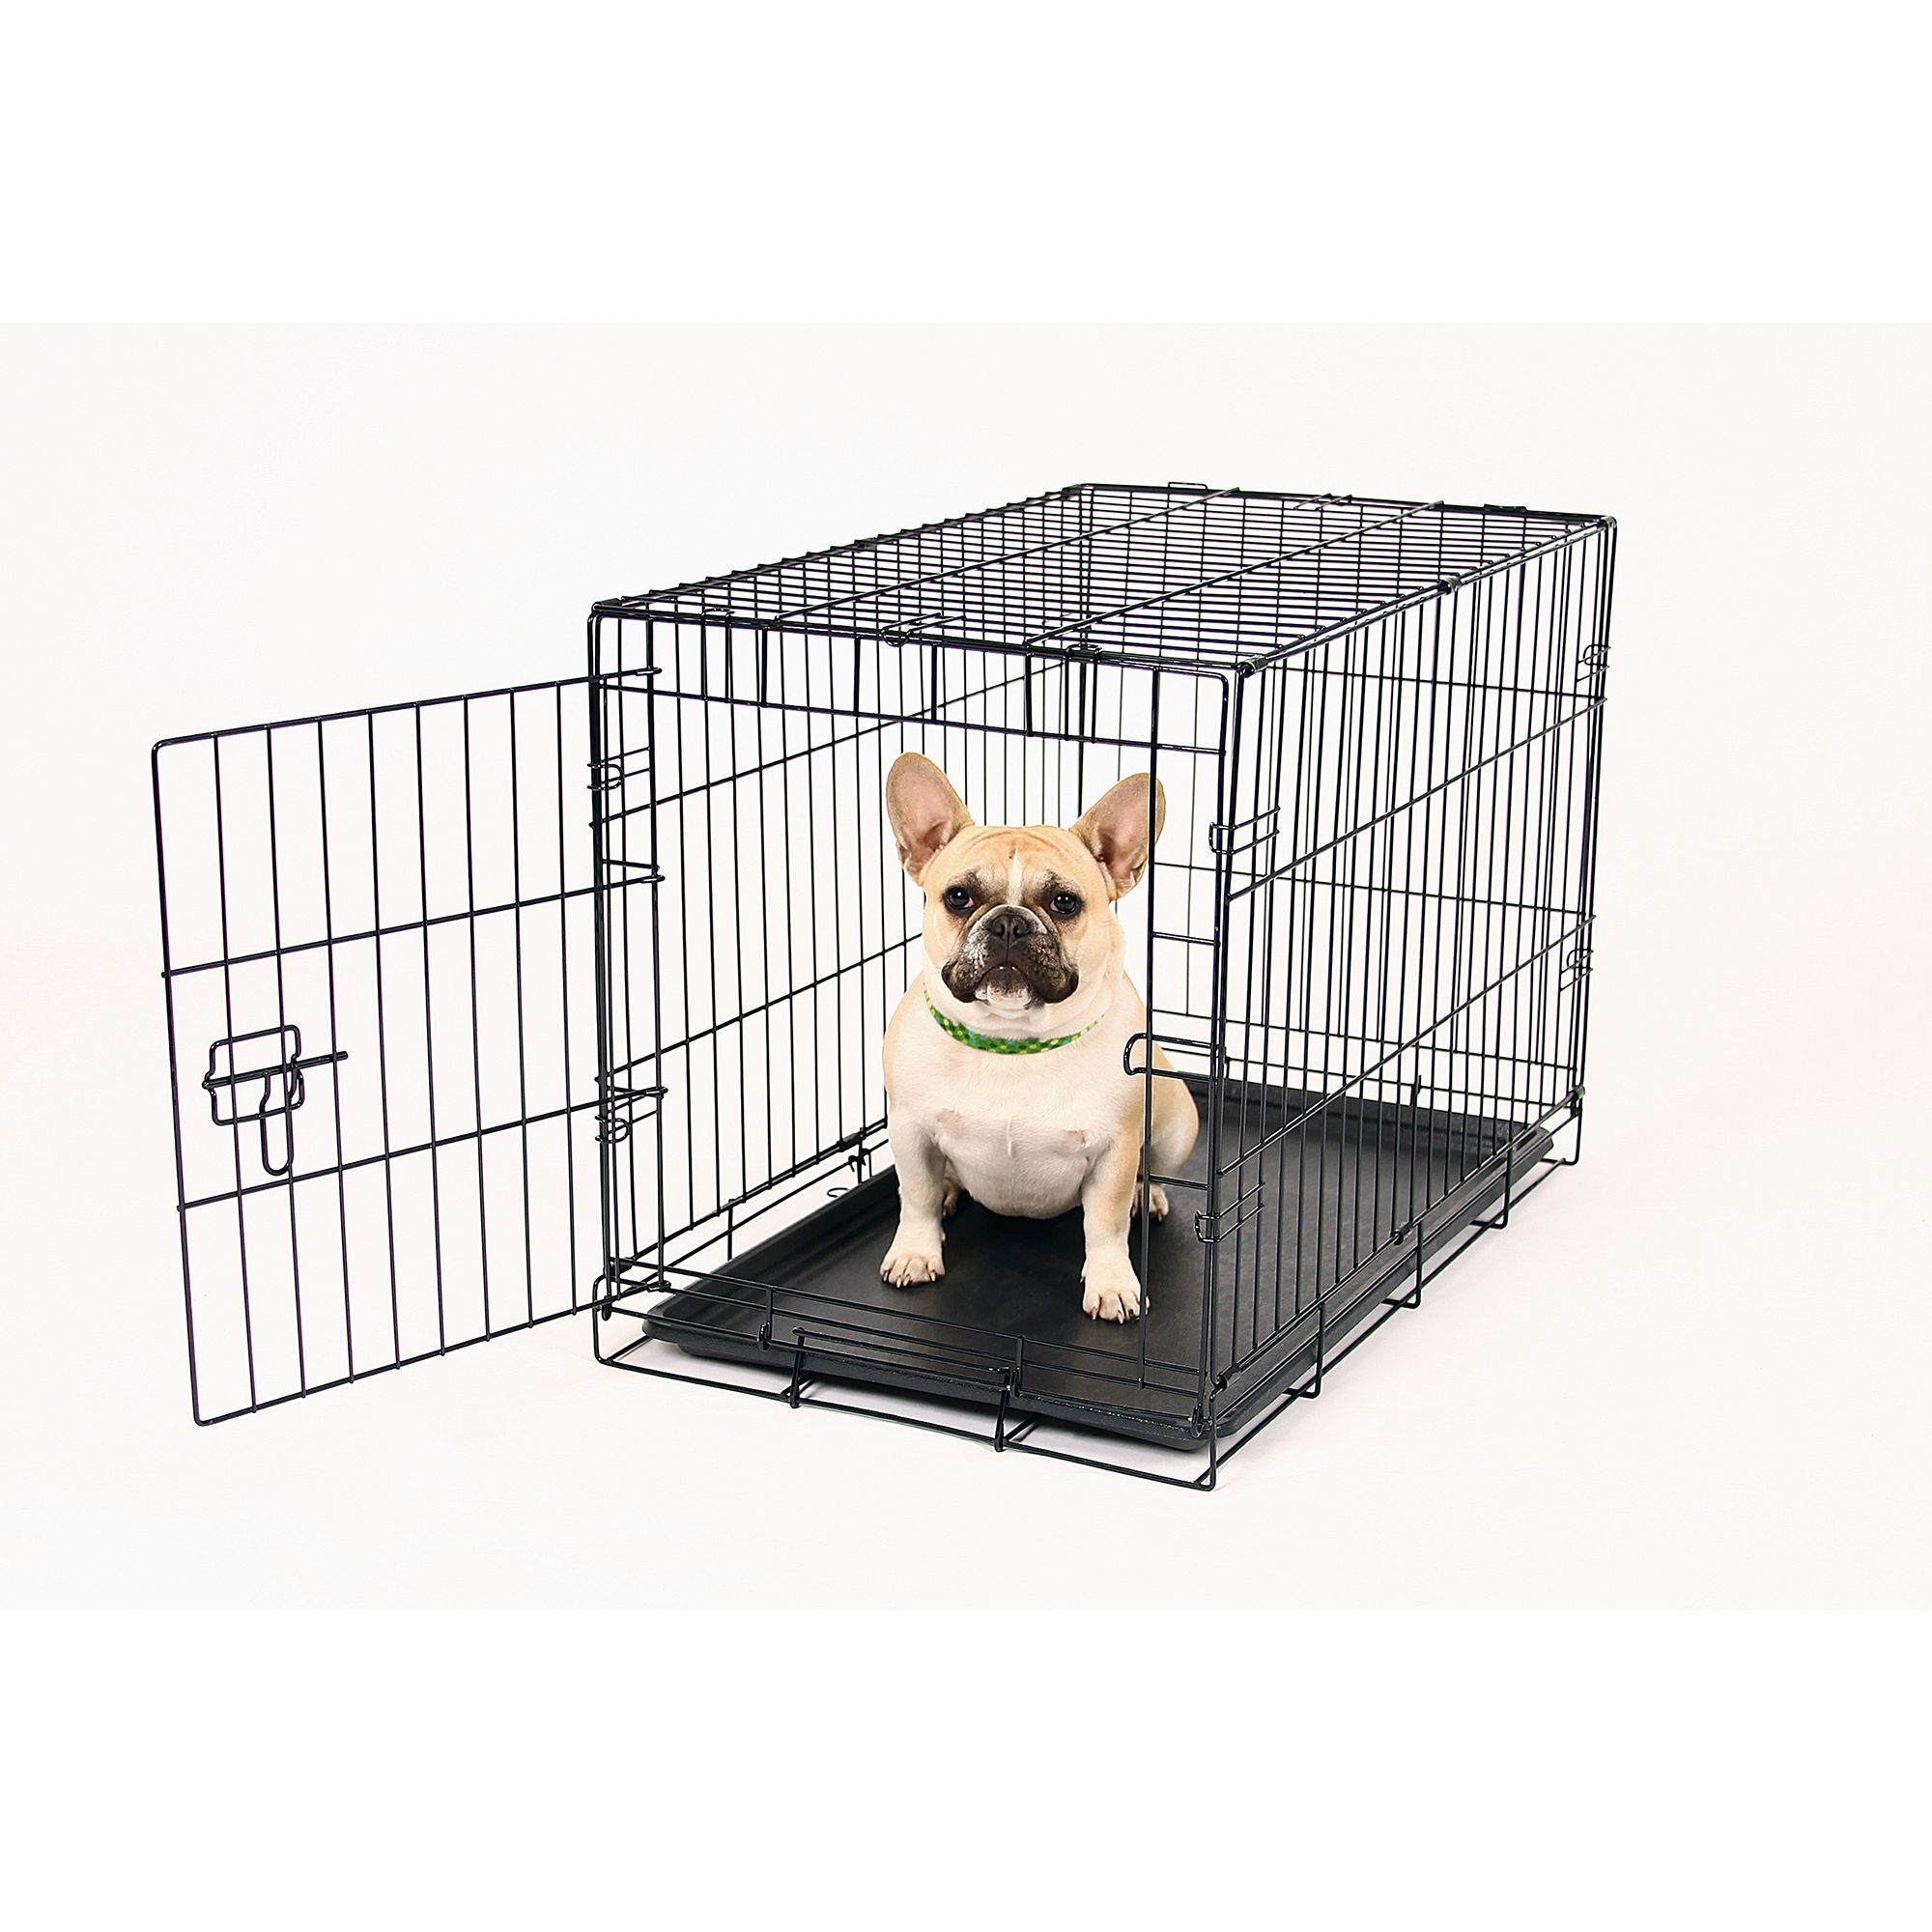 Carlson Compact Single Door Metal Dog Crate Small Black Wheretobuycheapdogcrates Small Dog Crate Wire Dog Crates Dog Crate